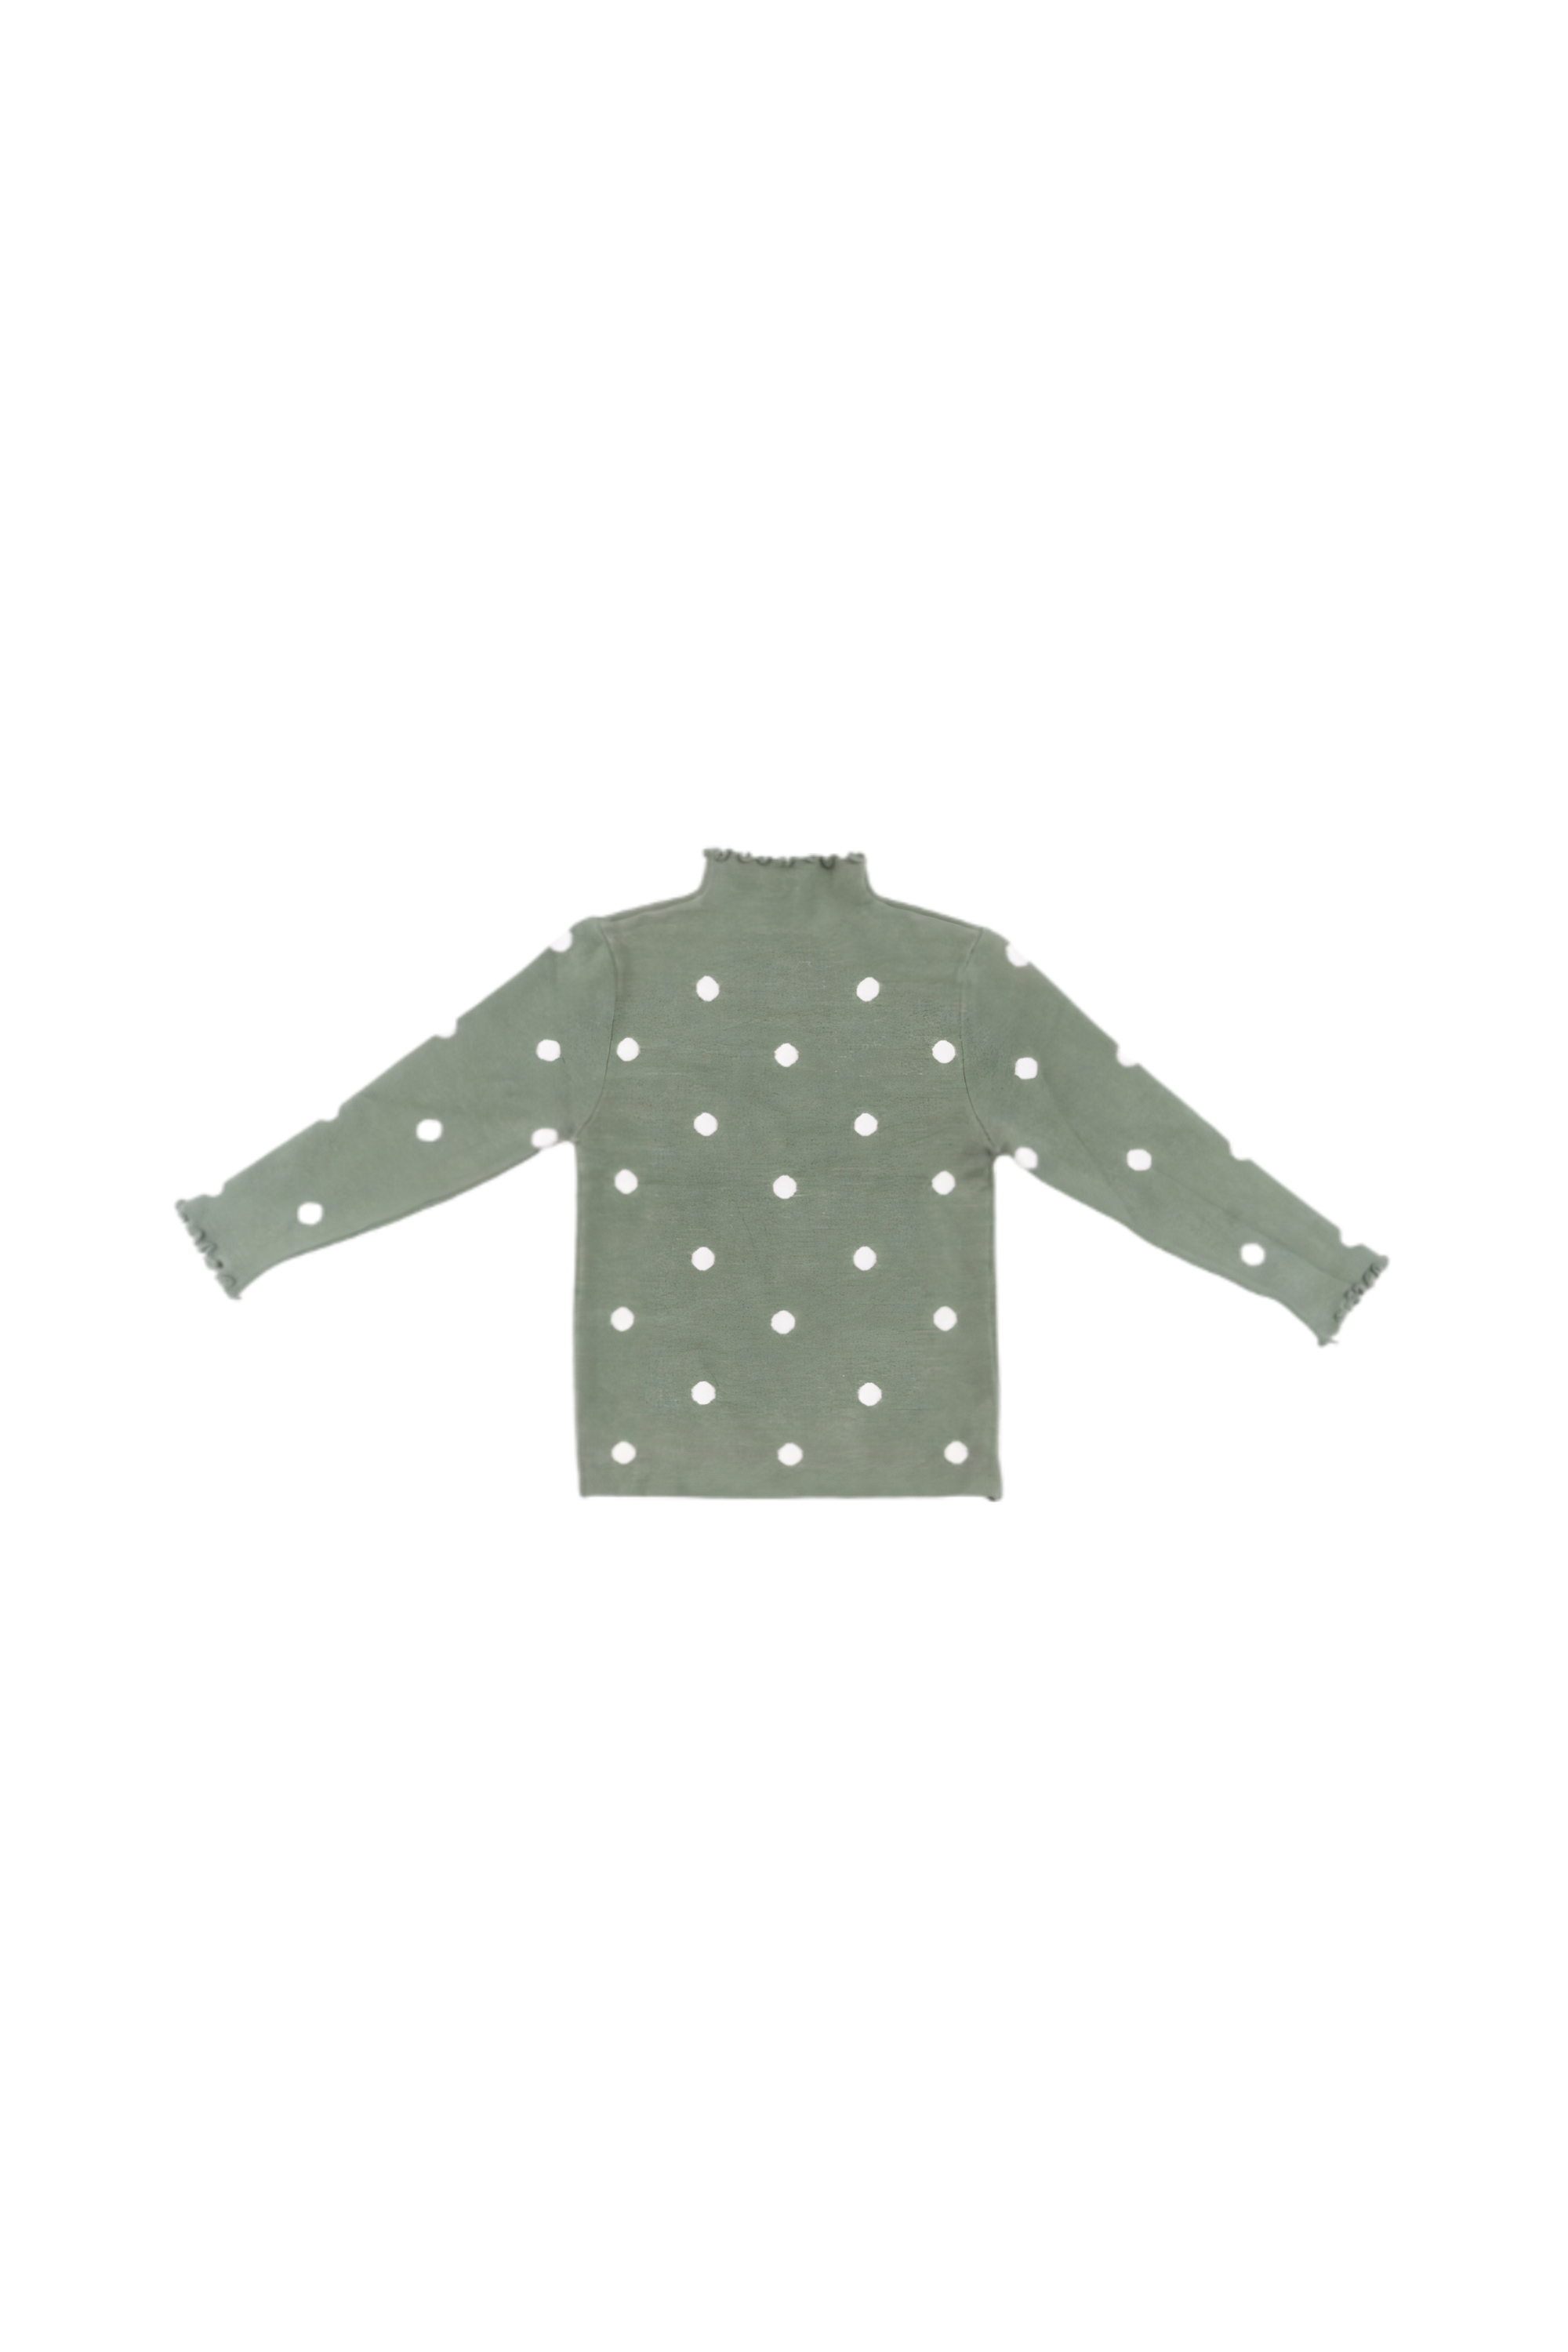 Sweater green with peas